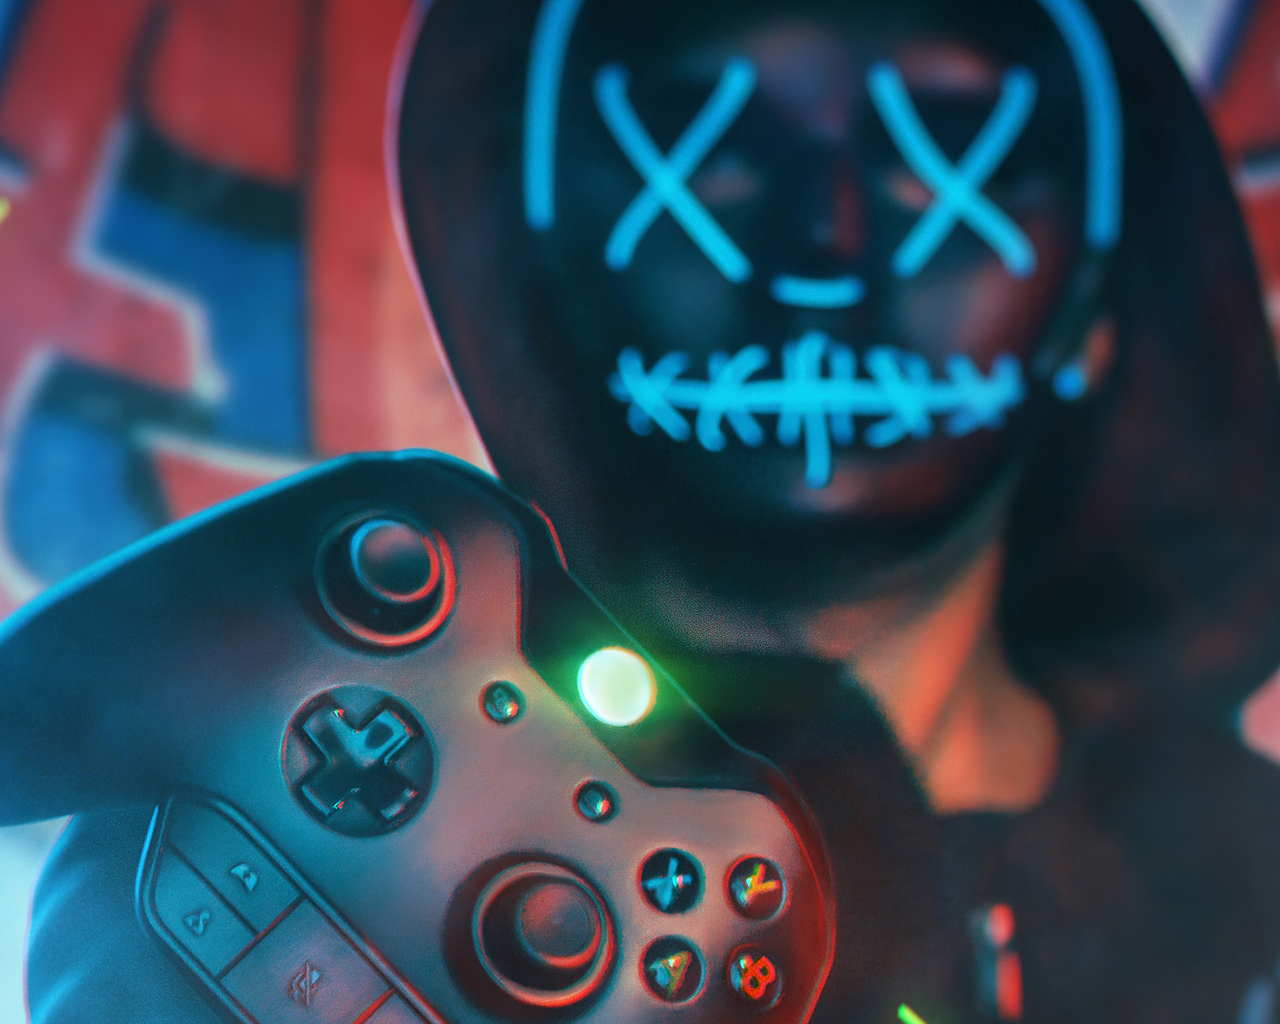 1280x1024 Gamer Boy Mask 4k 1280x1024 Resolution Hd 4k Wallpapers Images Backgrounds Photos And Pictures